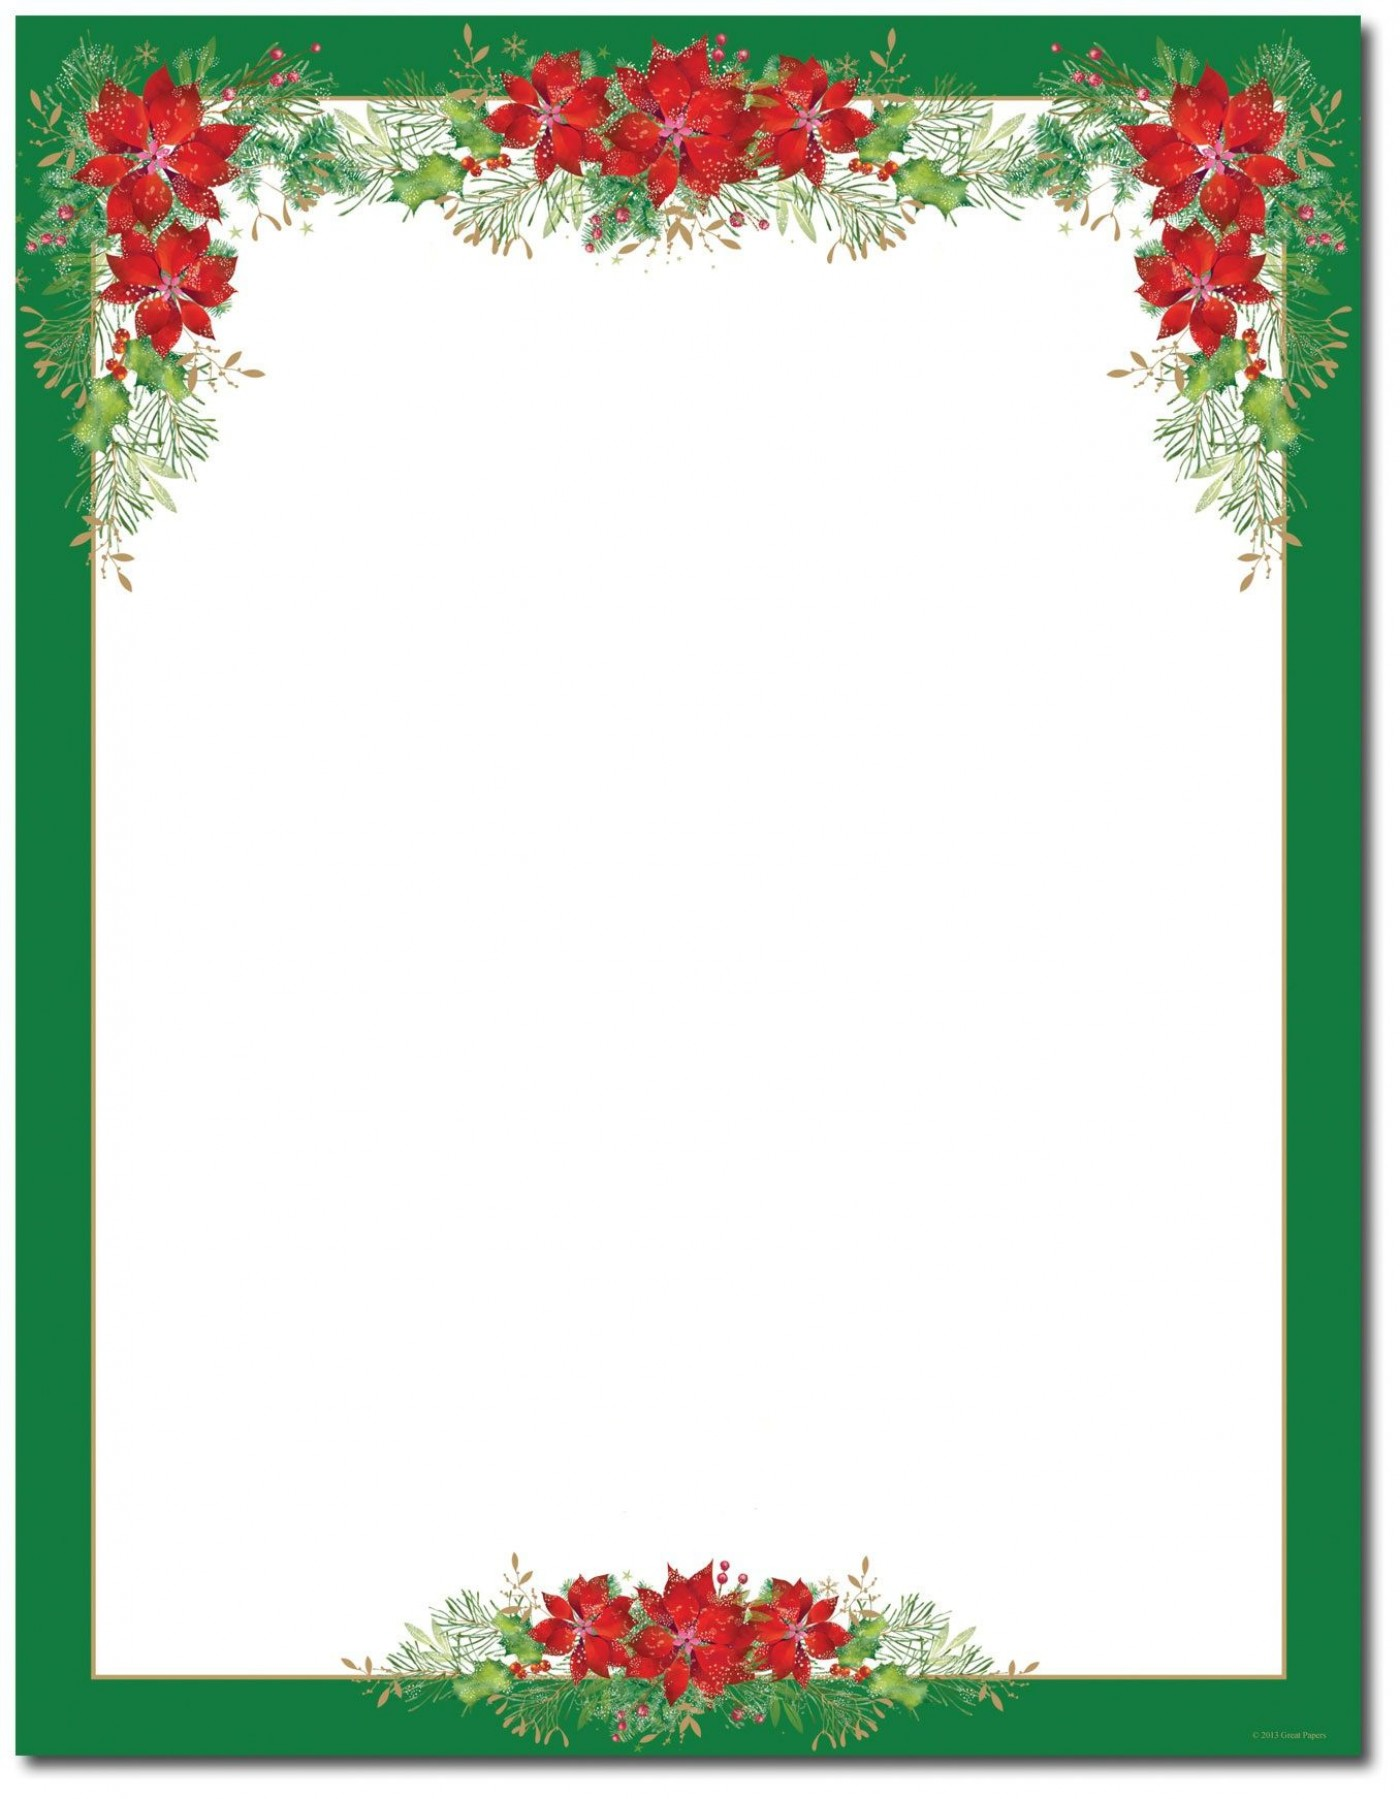 002 Imposing Christma Stationery Template Word Free Design  Religiou For Downloadable1400